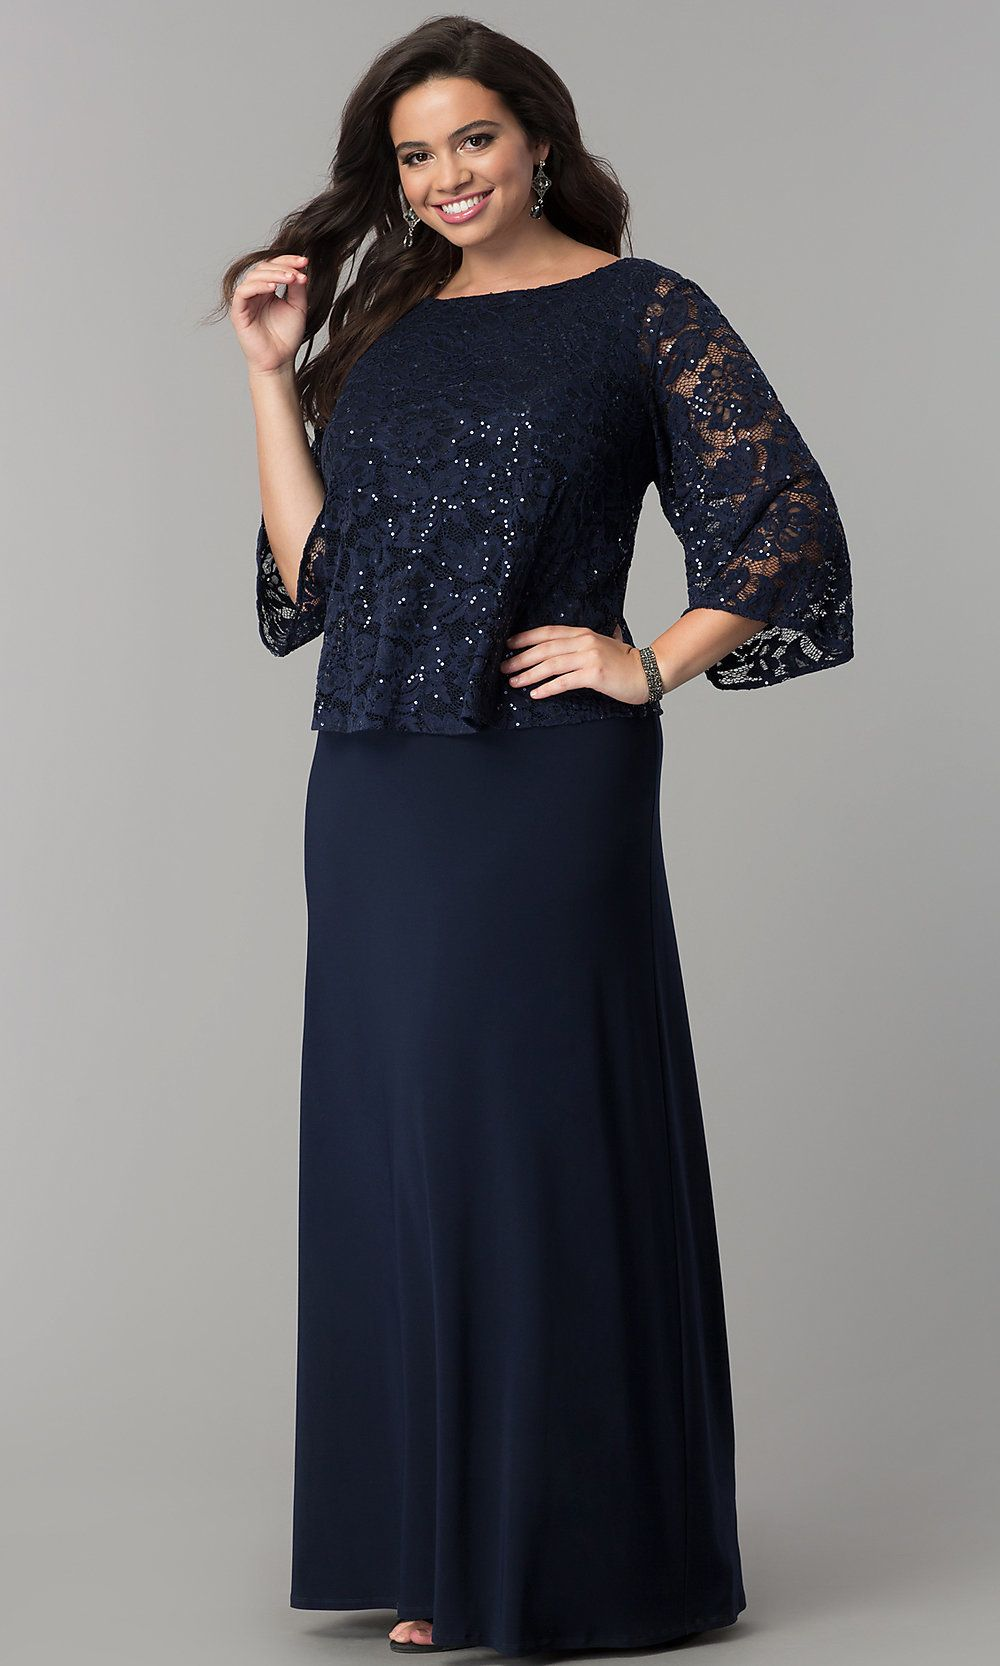 Mob Long Dress With 3 4 Sleeve Lace Popover Bodice Plus Size Formal Dresses Women Dresses Classy Plus Size Holiday Dresses [ 1666 x 1000 Pixel ]